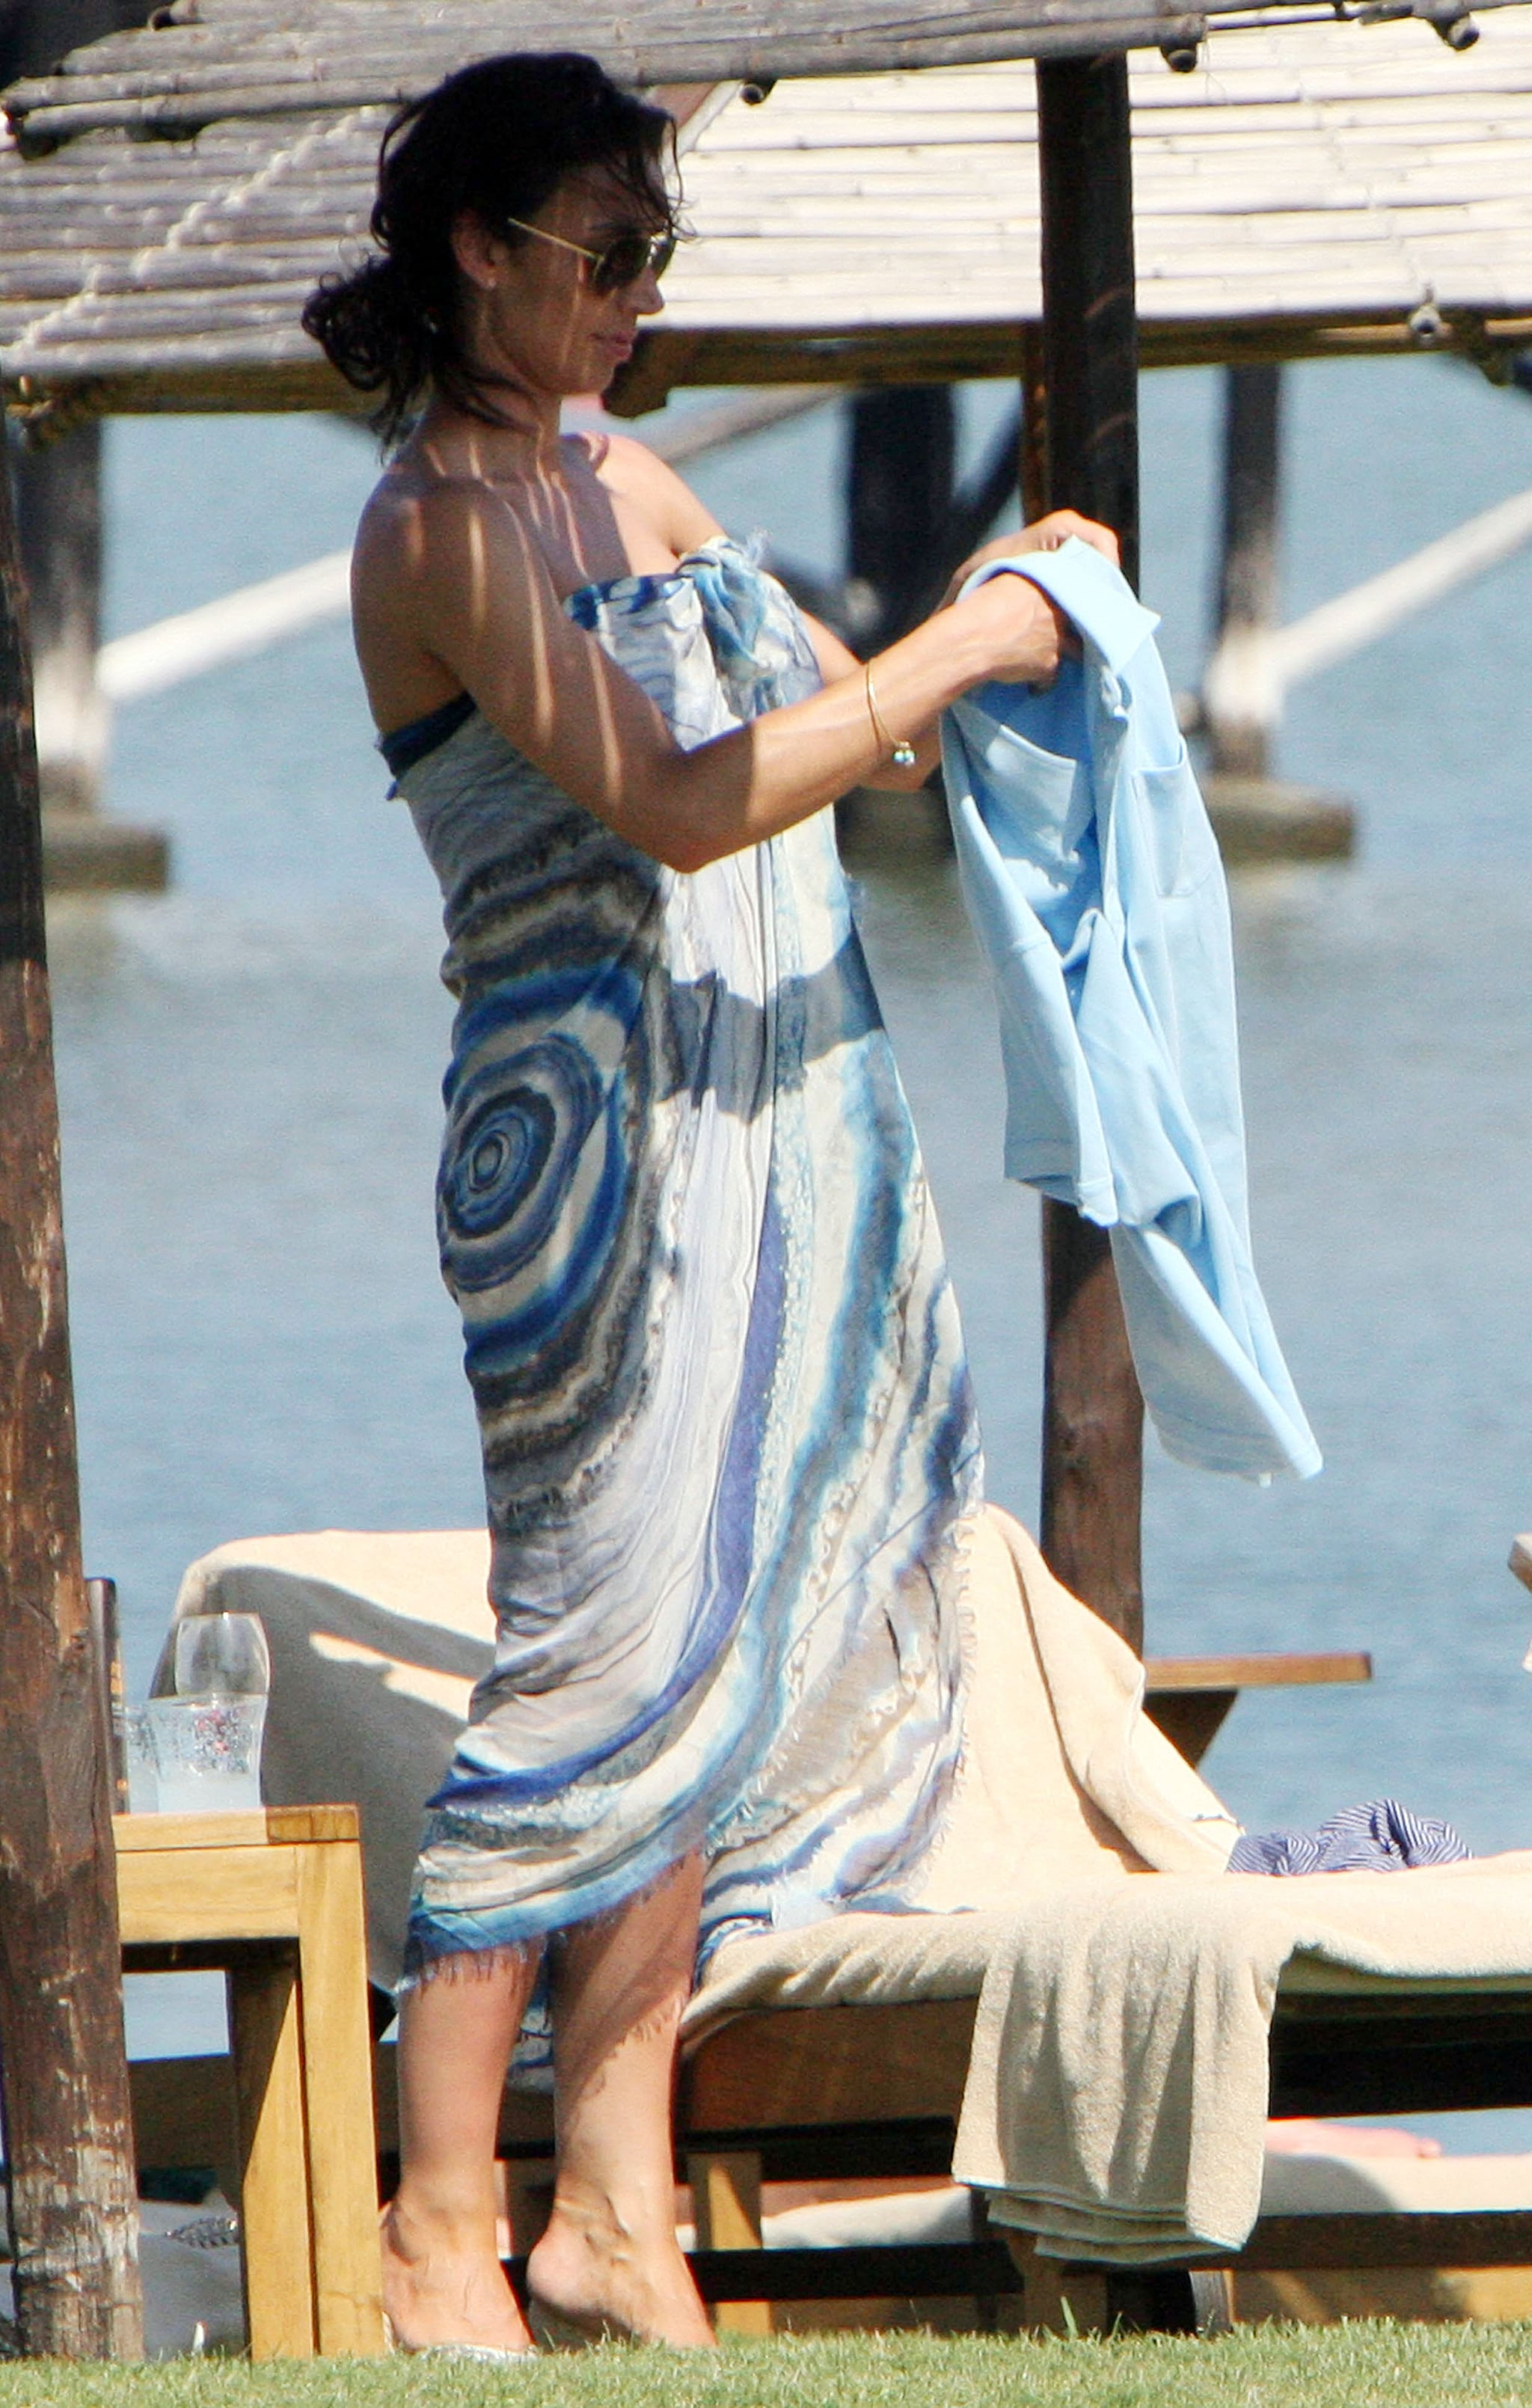 Pictures Of Frank Lampard And Christine Bleakley Kissing On Holiday In Sardinia With Redknapps Engagement Ring Rumours Denied Popsugar Celebrity Uk